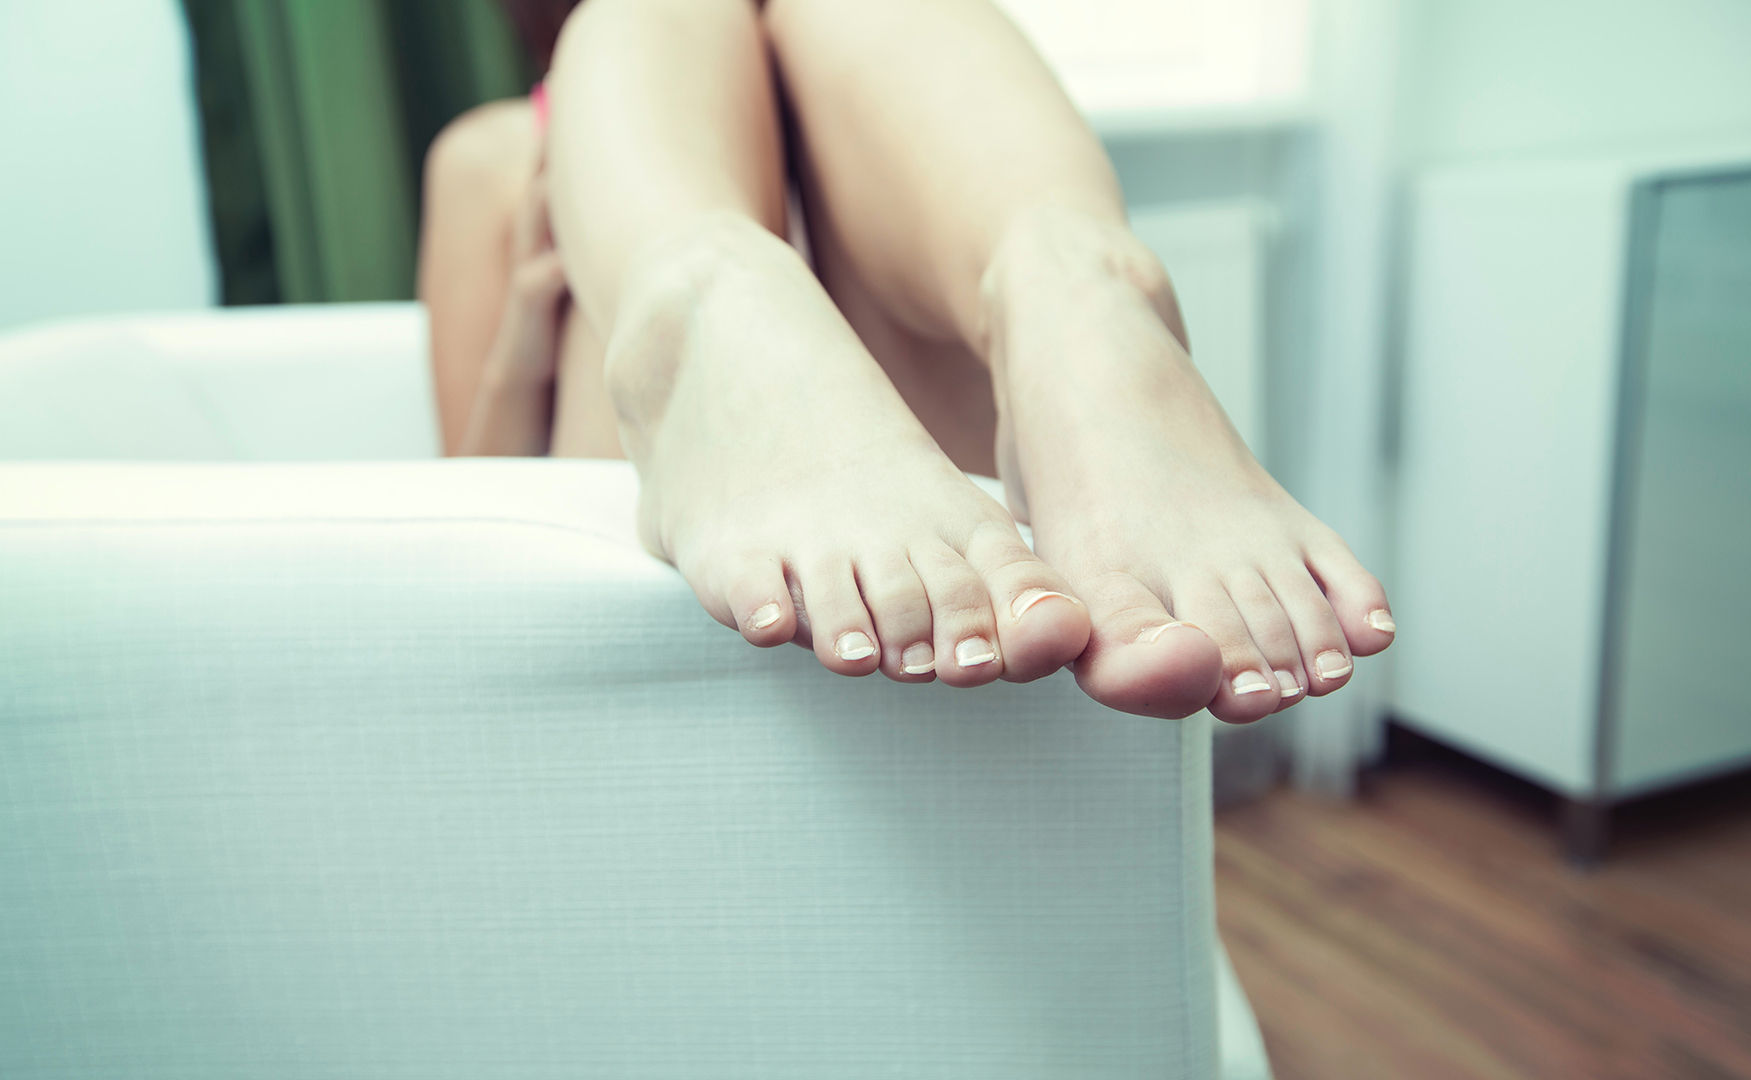 Sex & Feet: How to Explore Your Foot Fetish During Sex